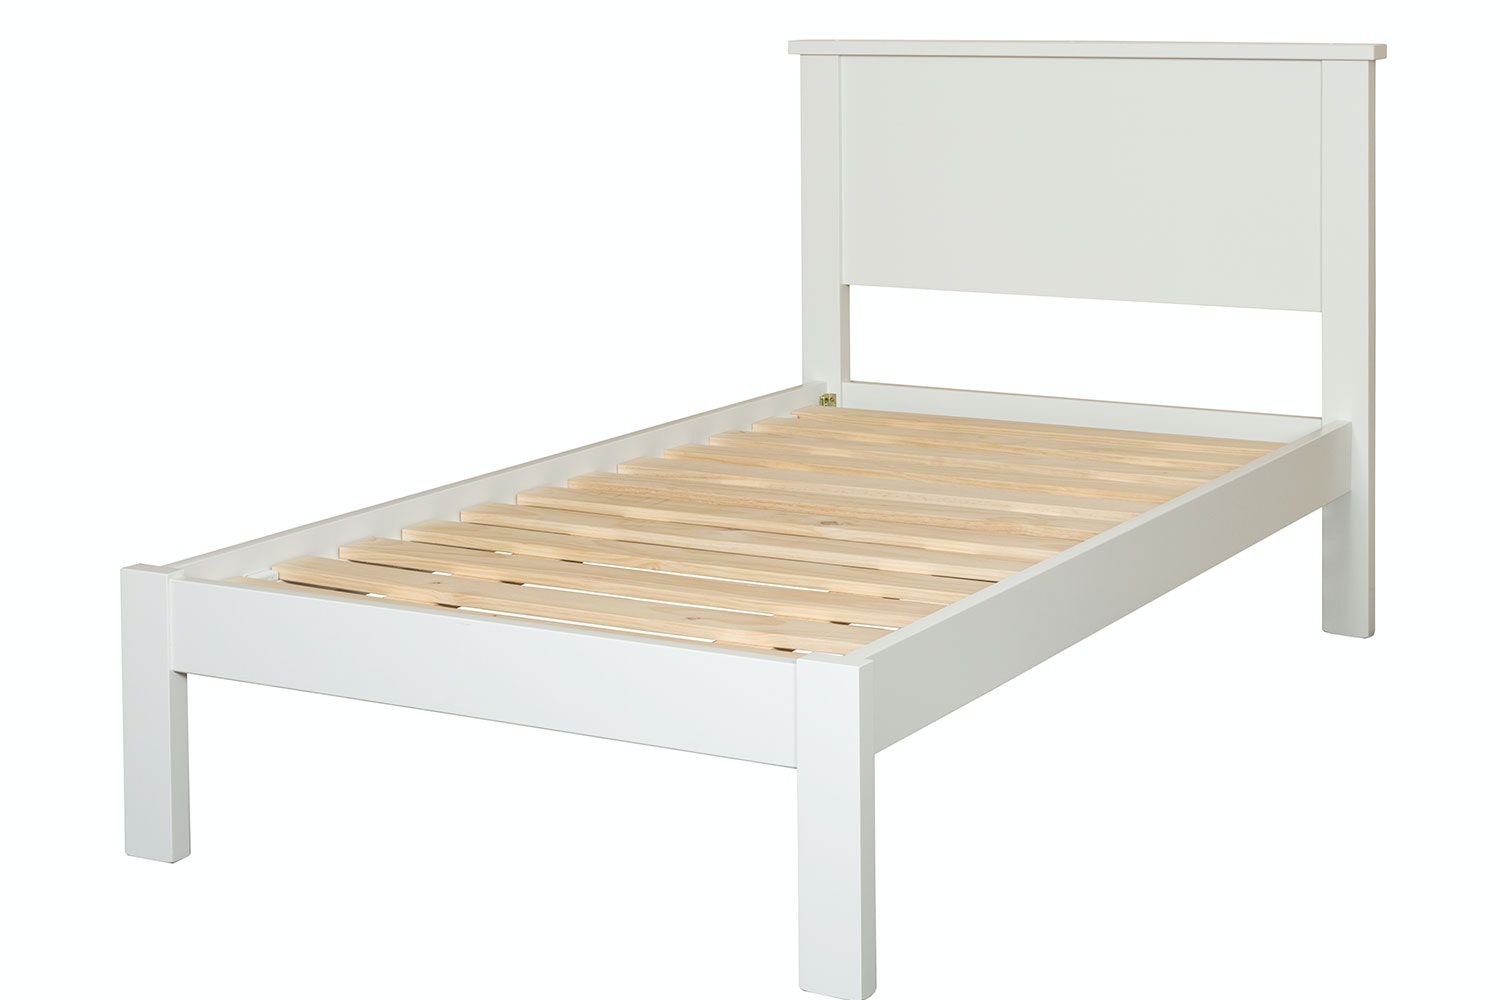 Granville King Panelled Bed Frame by Coastwood Furniture